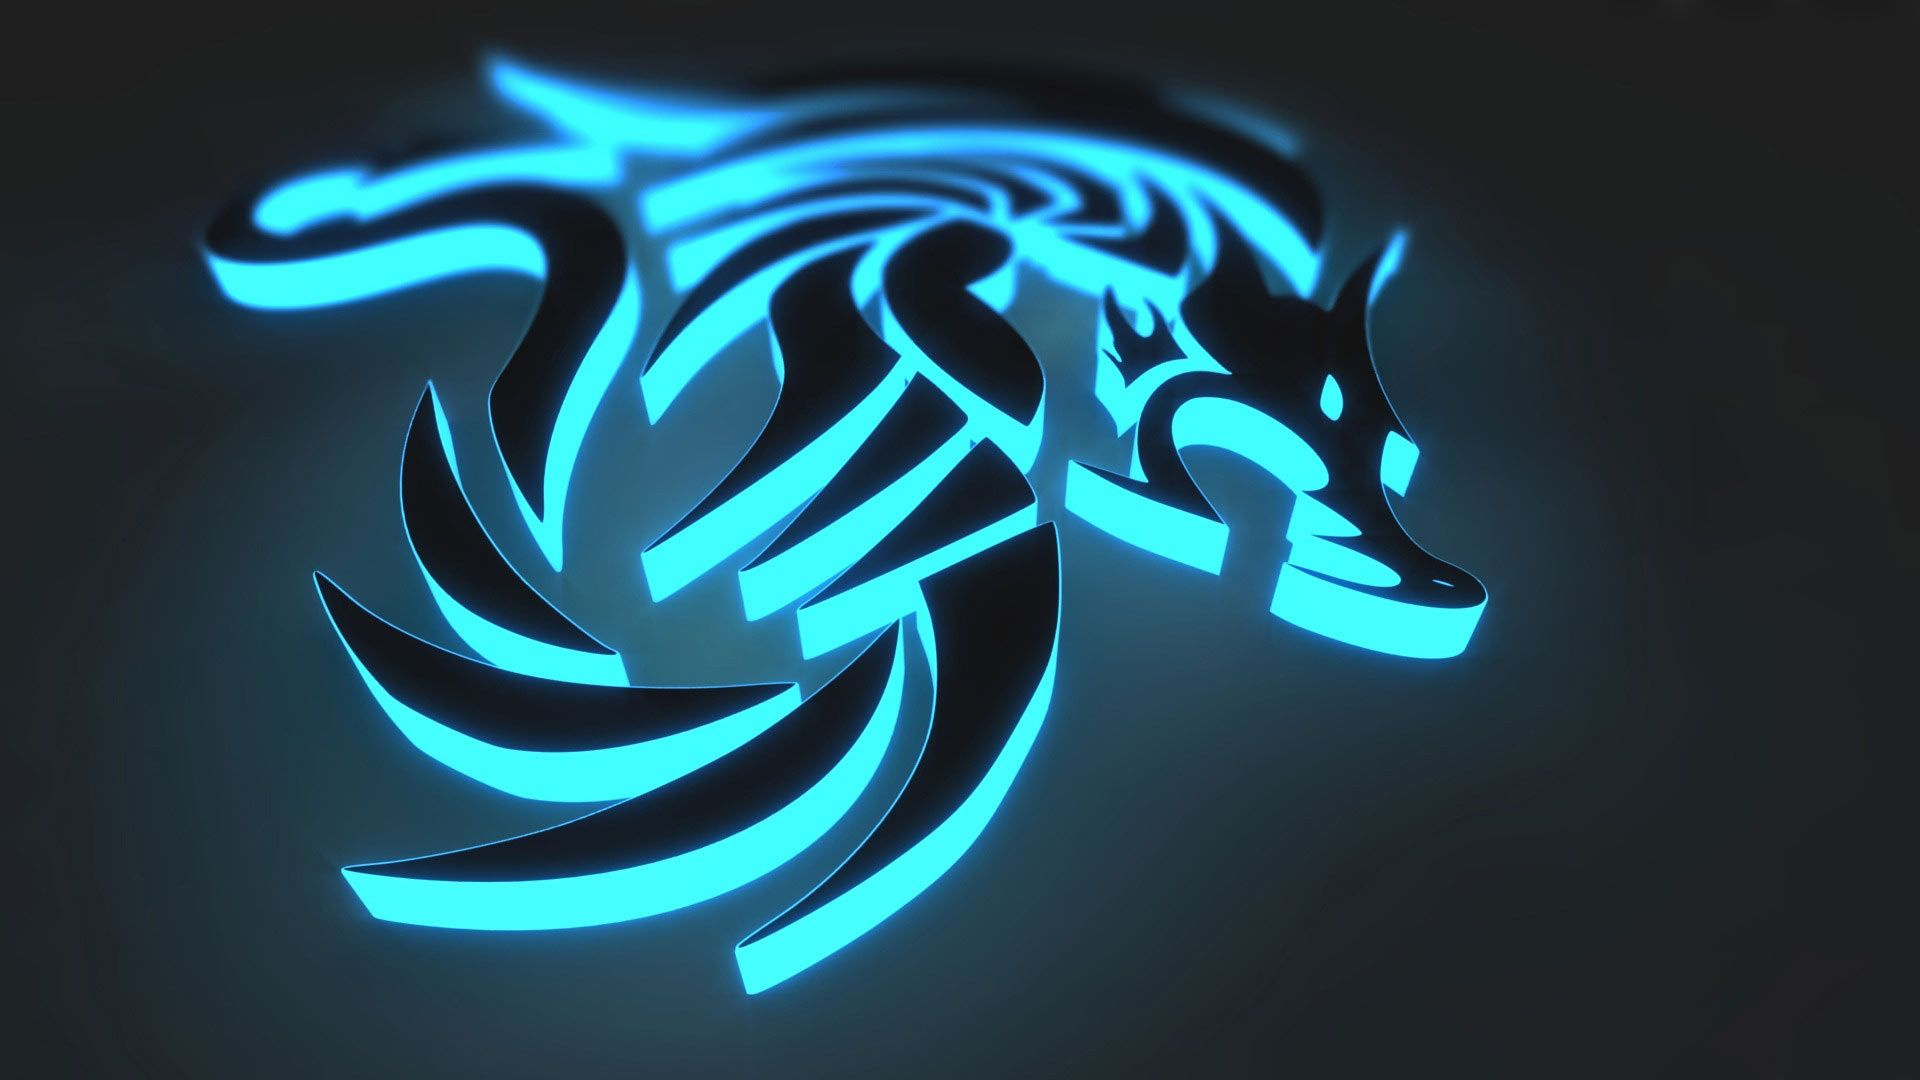 3d Dragon Neon Epic Wallpaper Hd Hd Wallpapers For Laptop Dragon Tattoo Wallpaper Neon Wallpaper